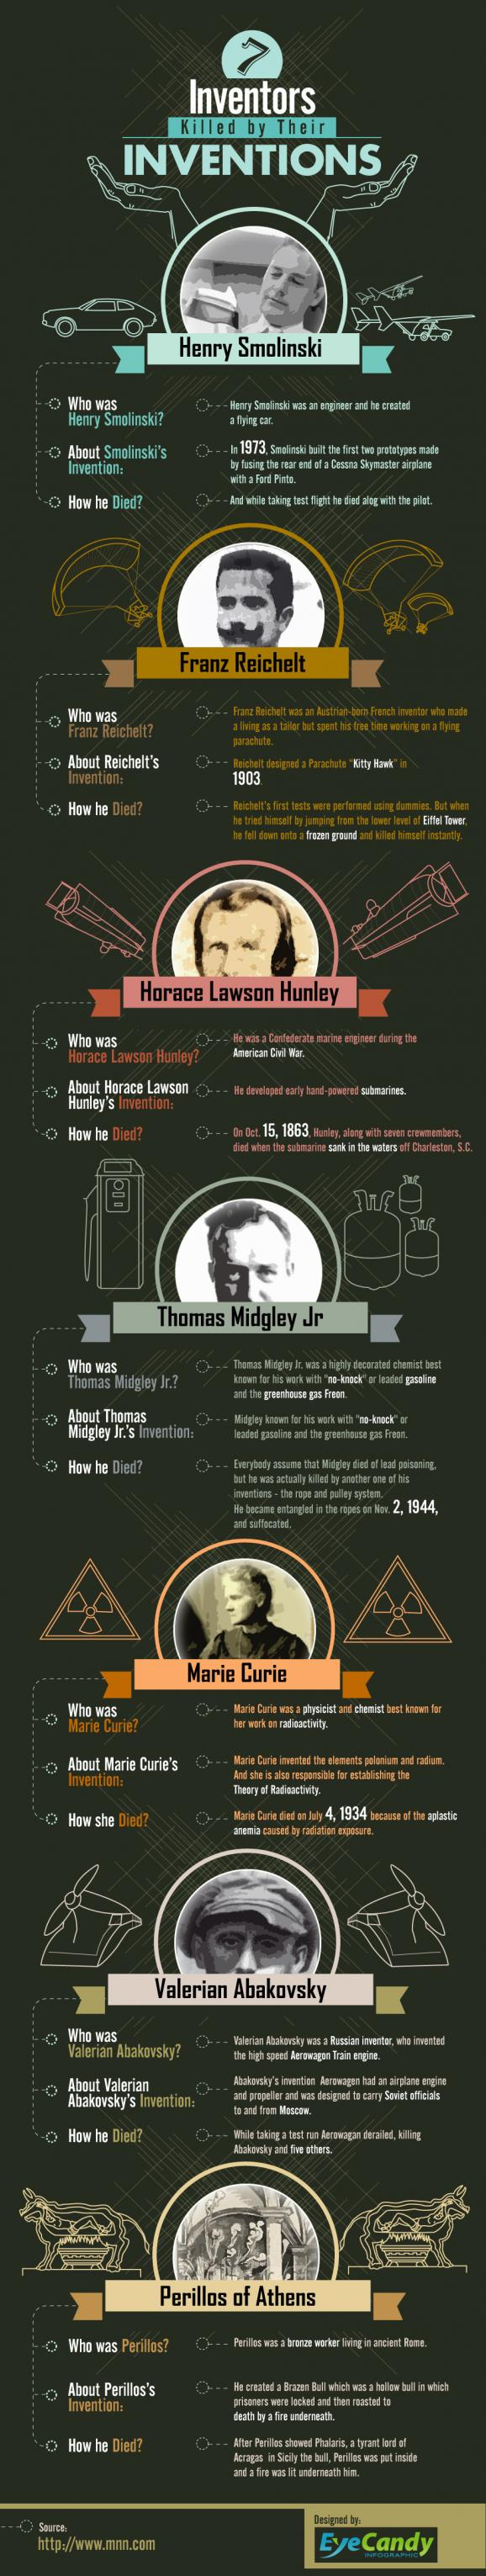 Inventors killed by their inventions infographic